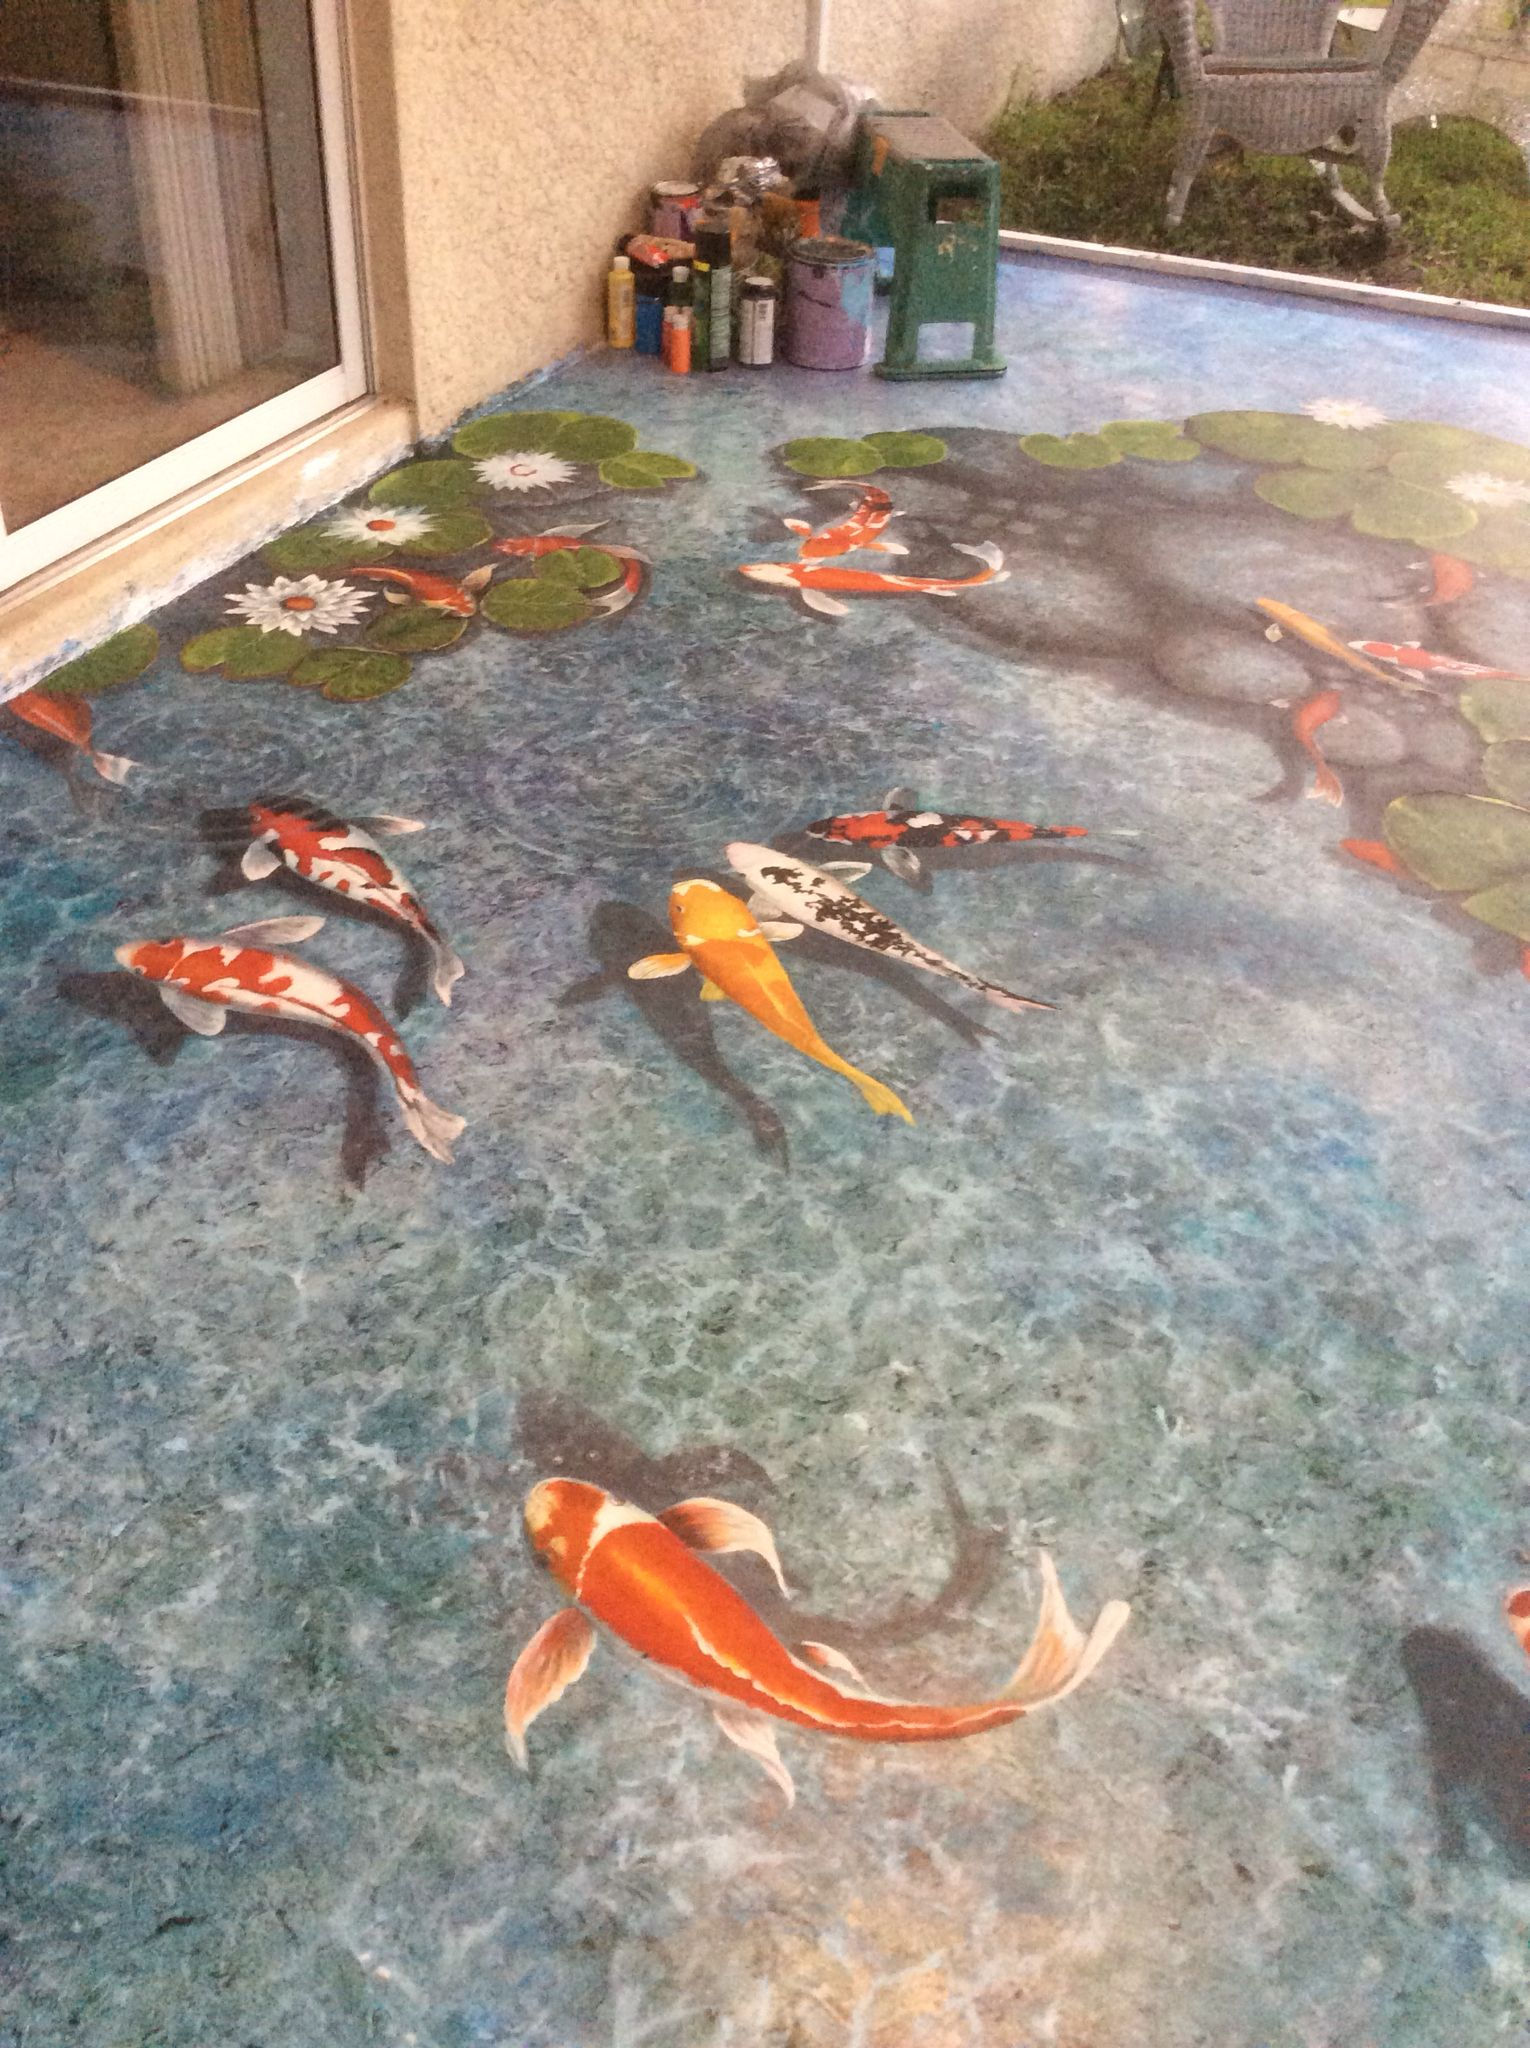 Concrete Koi Pond Design Of Art And Design By Louise Moorman Floor Painting Trompe L